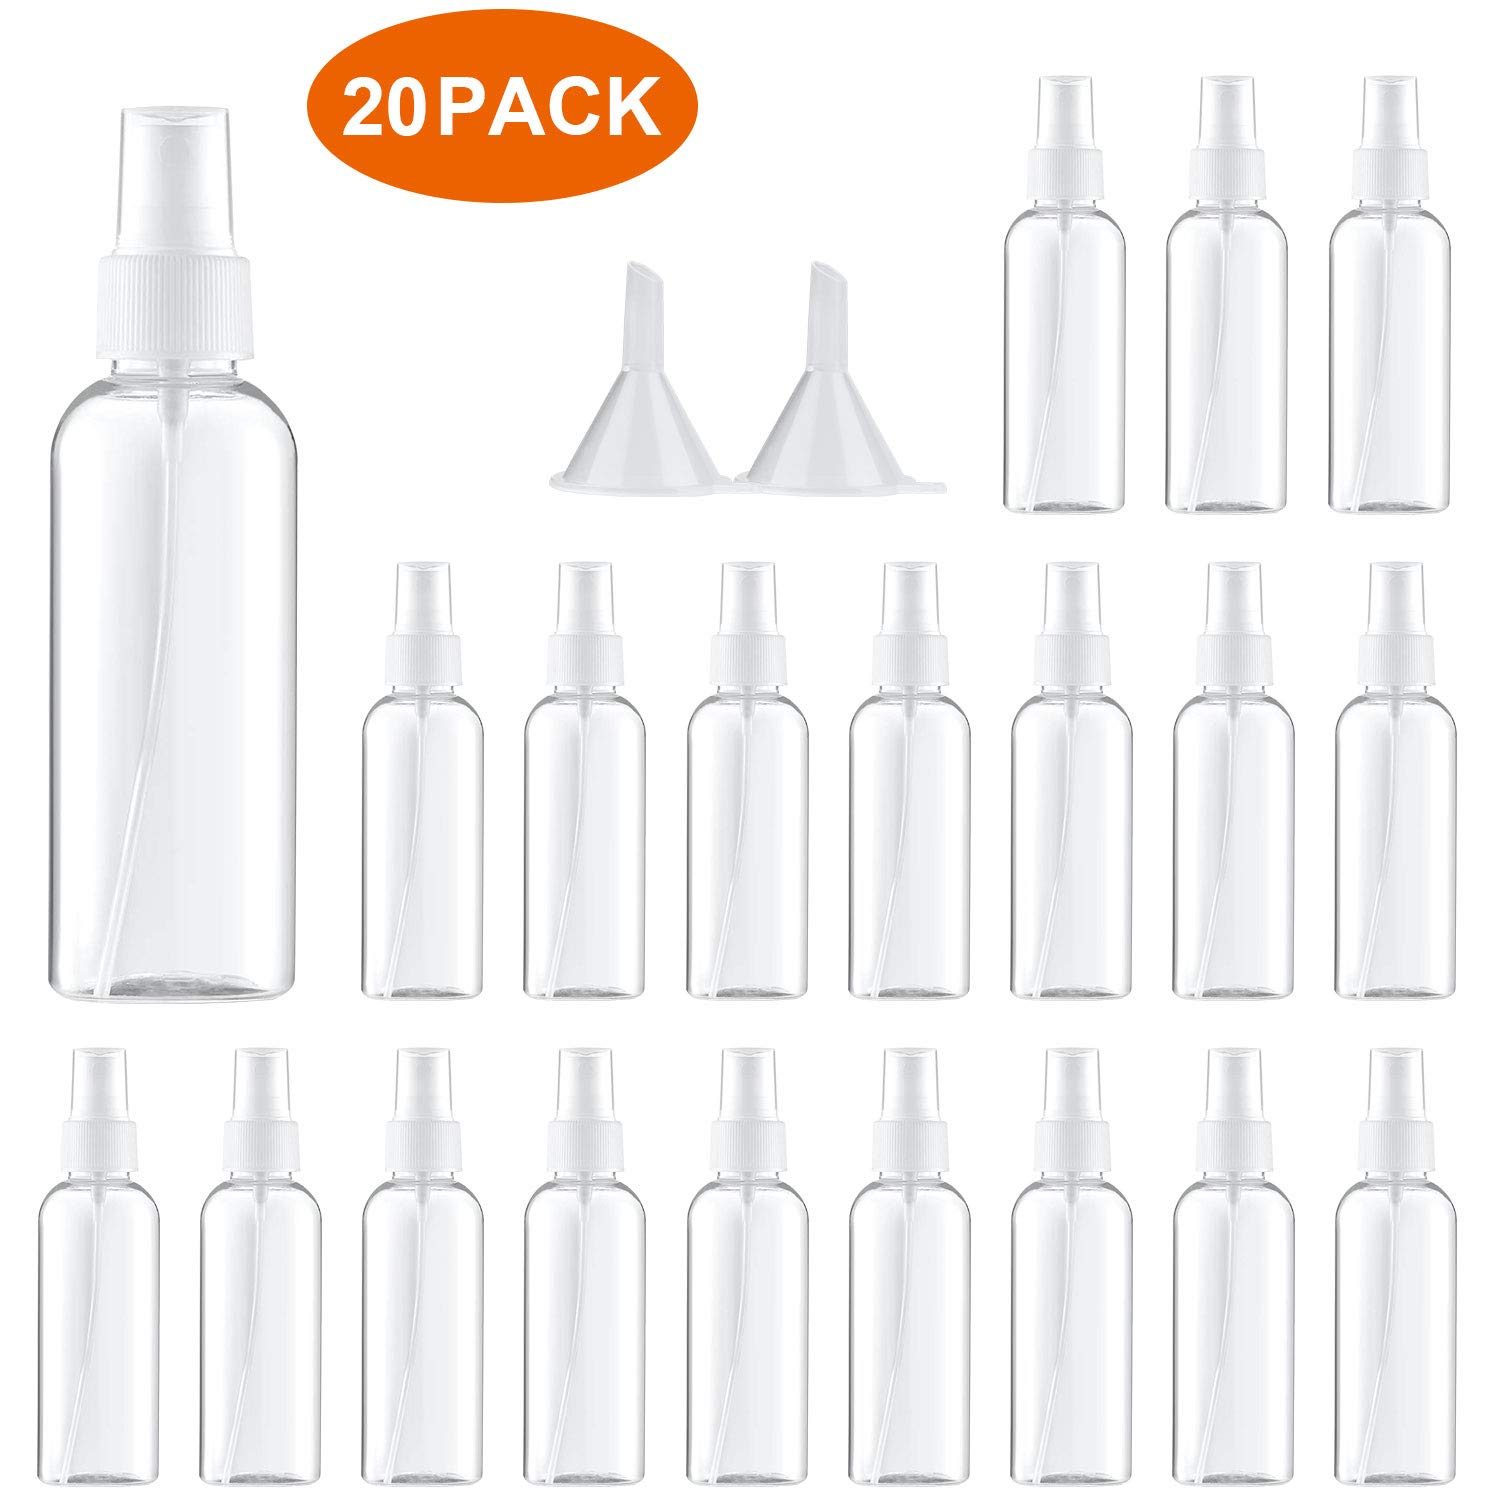 Spray Bottle,Fine Mist Mini Clear 80ml/2.7oz Spray Bottles,Small Reusable Empty Plastic Bottles with Atomizer Pumps (20 pack,2 Funnels included)